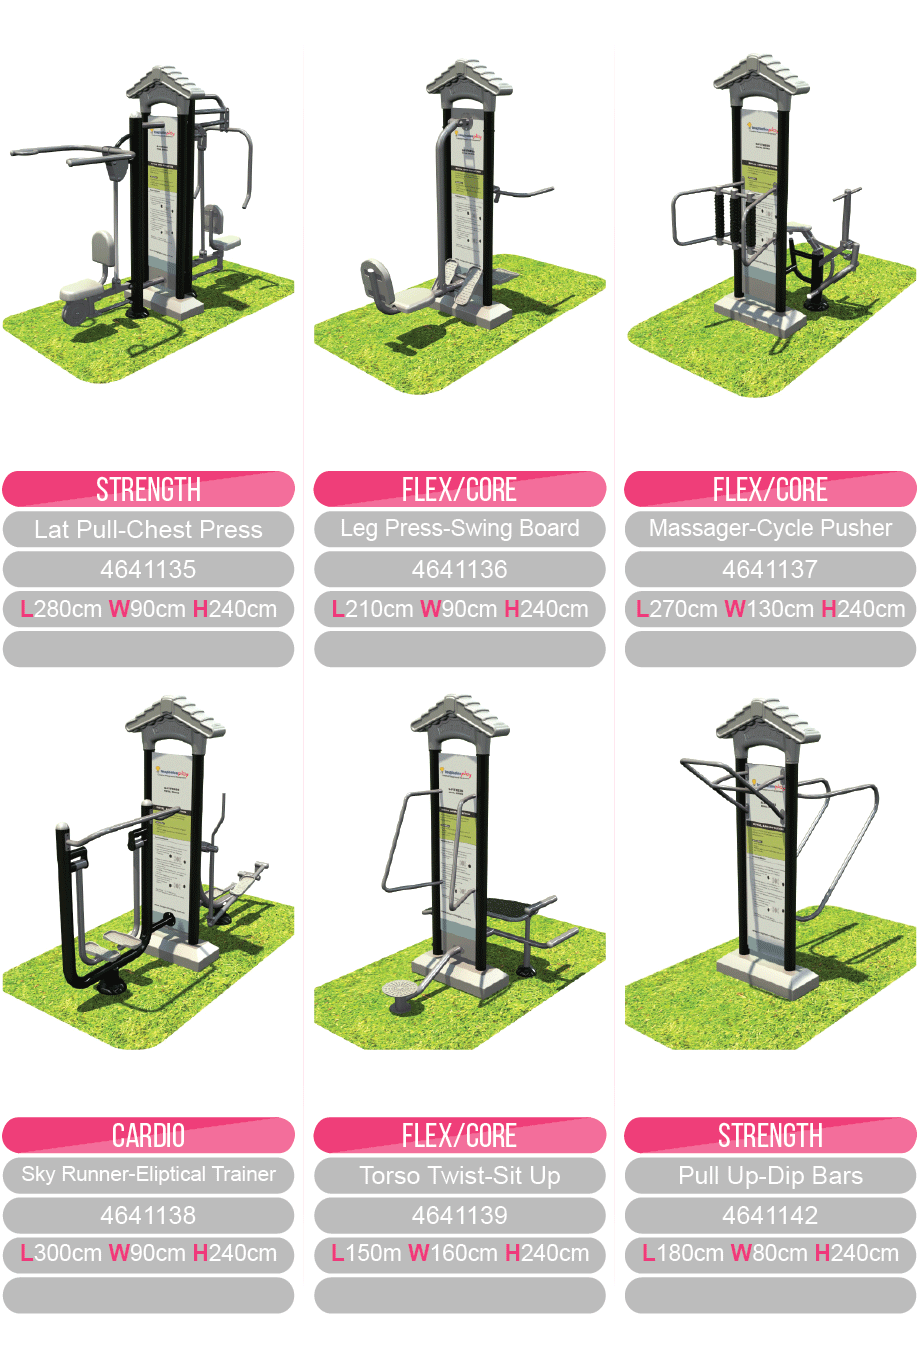 Hybrid fitness equipment